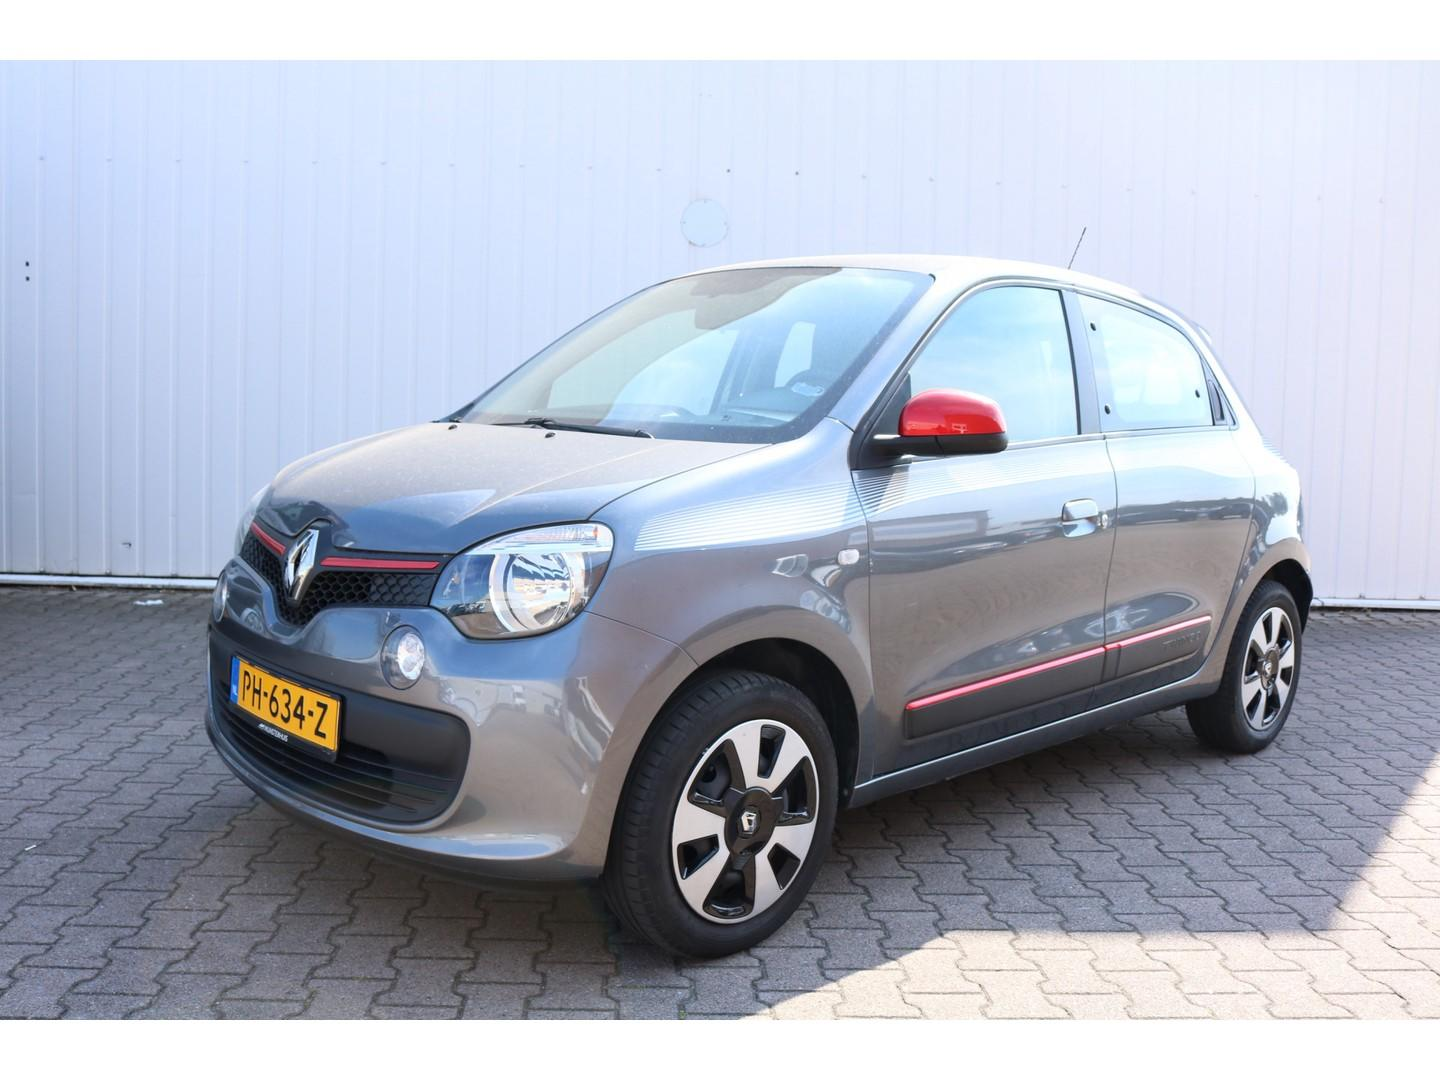 Renault Twingo Sce 70 collection - airco - begrenzer - telefoon houder - usb/aux/bluetooth -